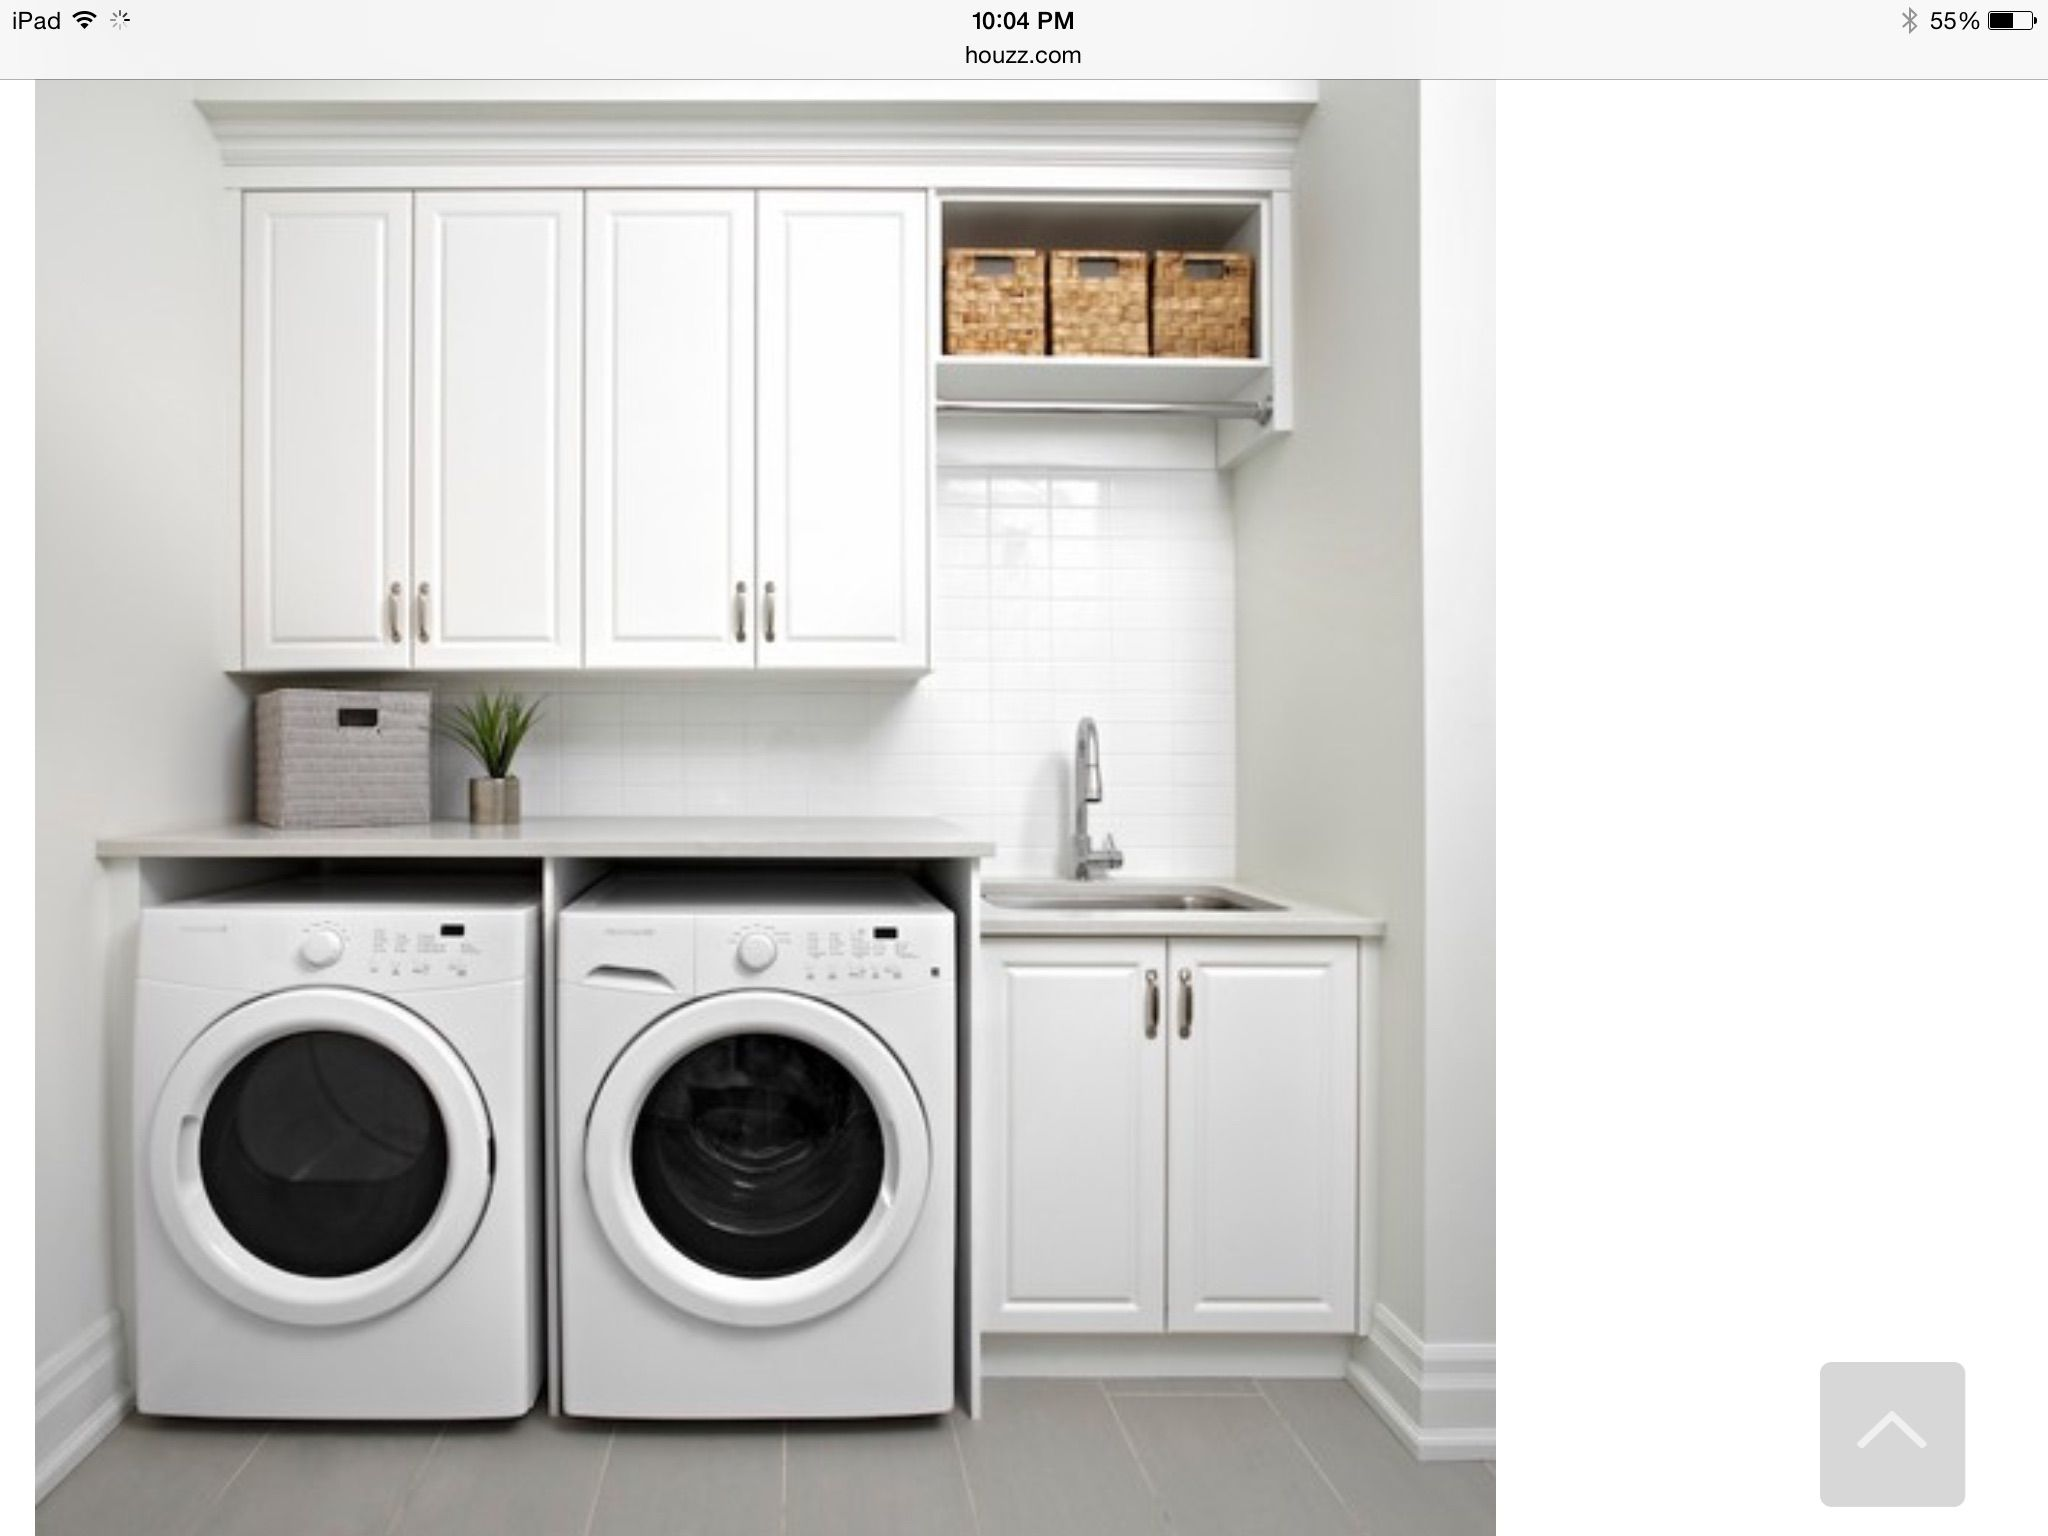 Laundry Two Doors One In Front Of The Washer Dryer And One Next